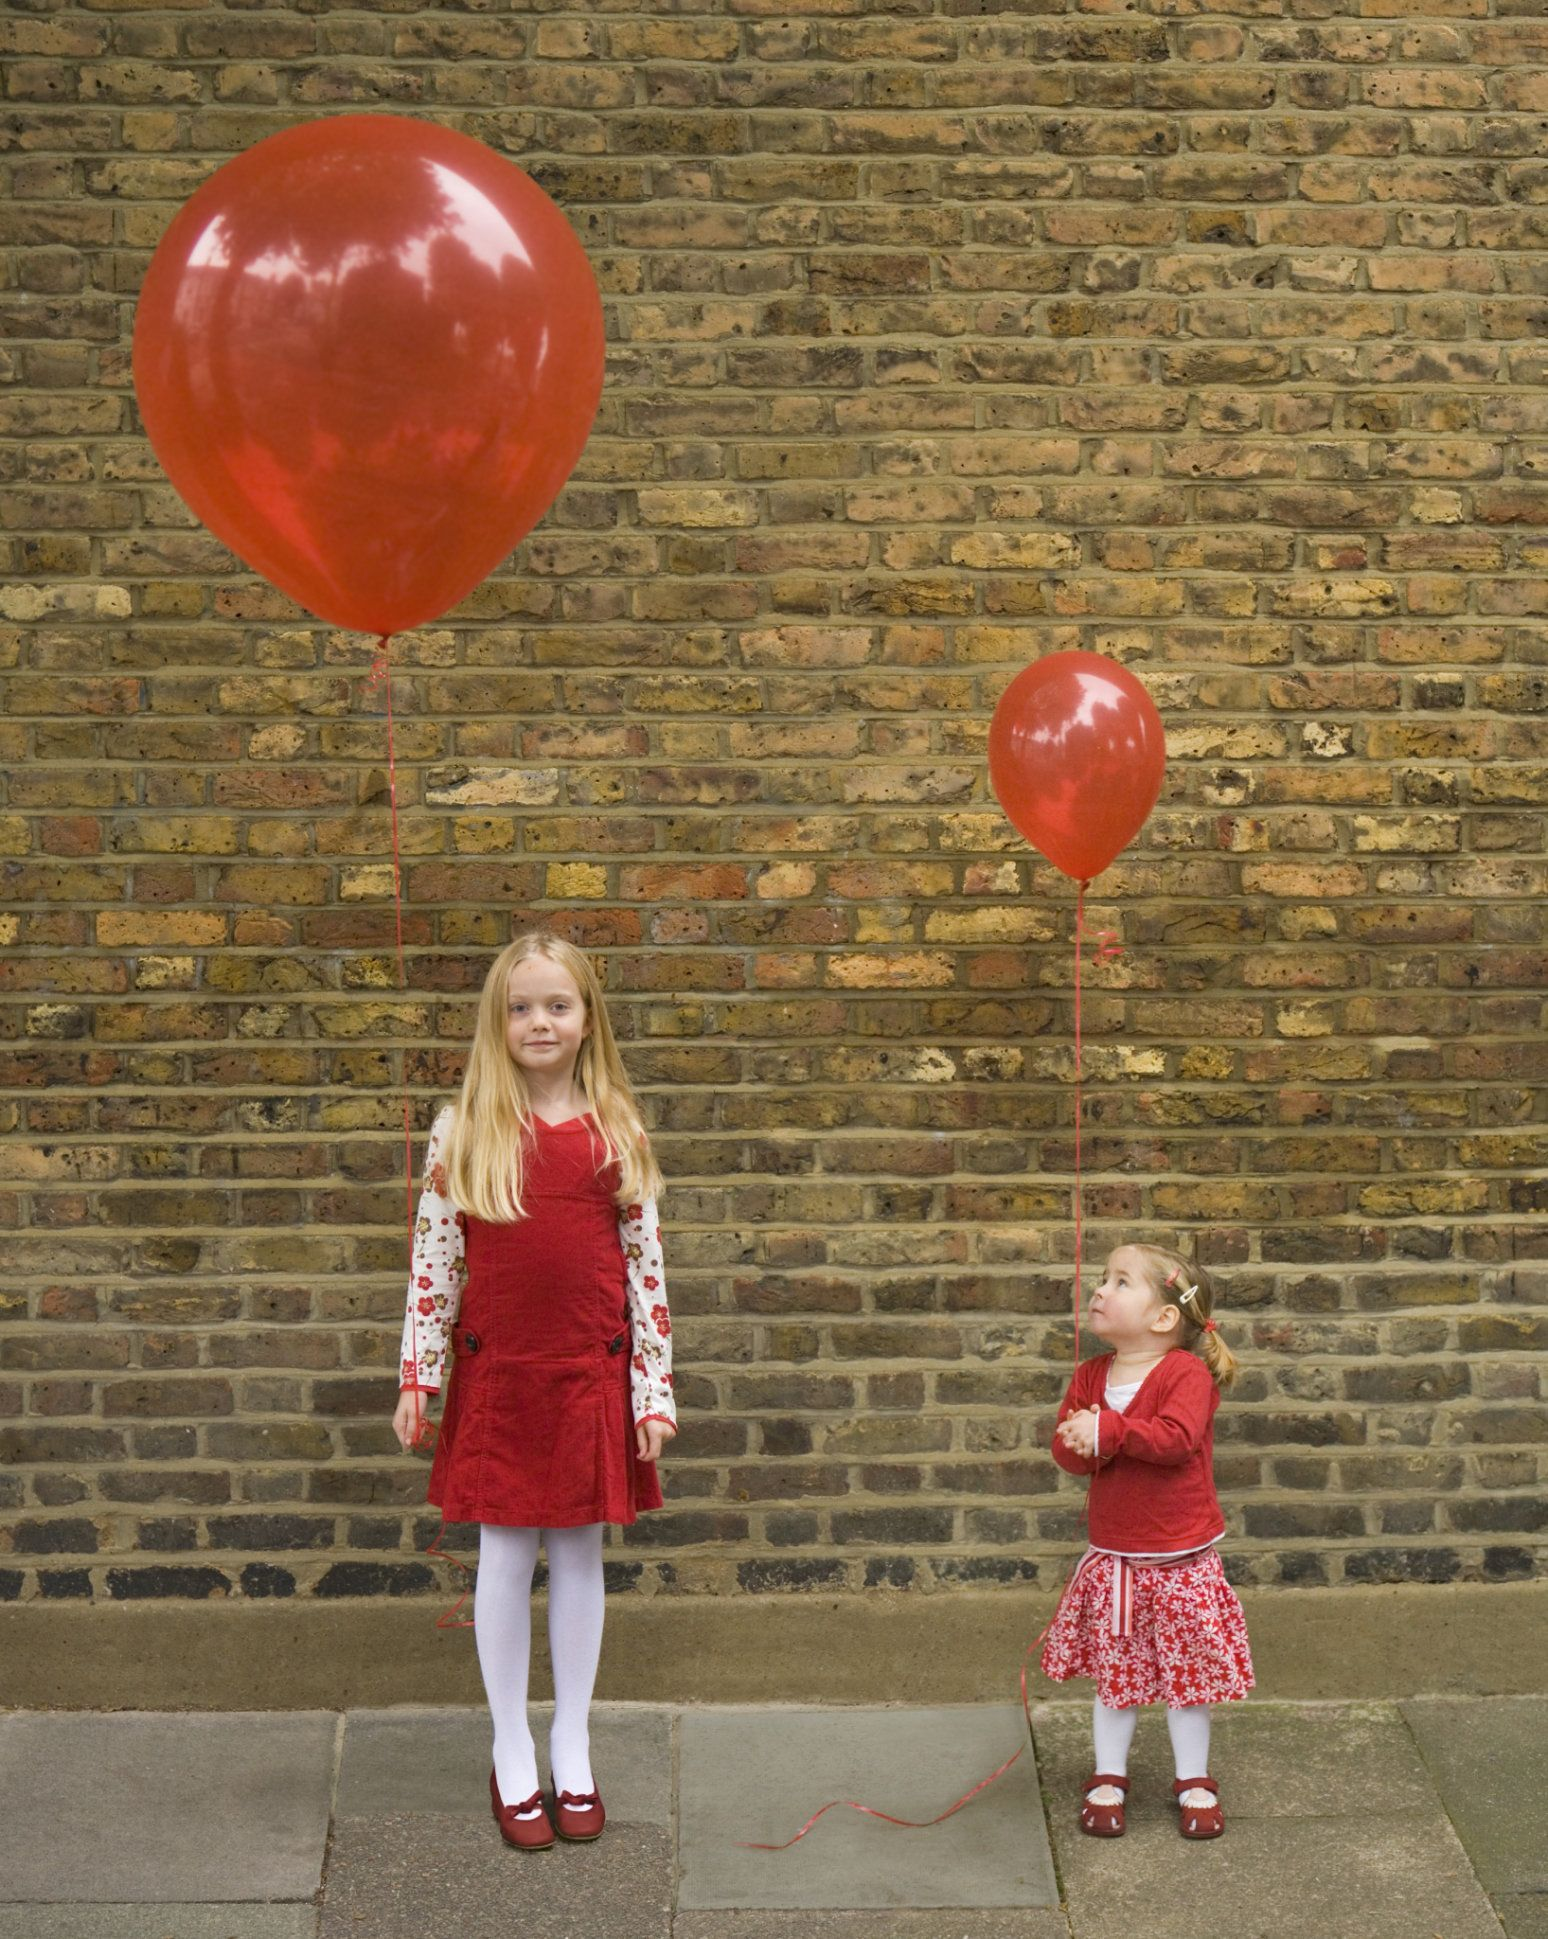 Girl (6-8) and toddler girl (18-24 months) holding balloons